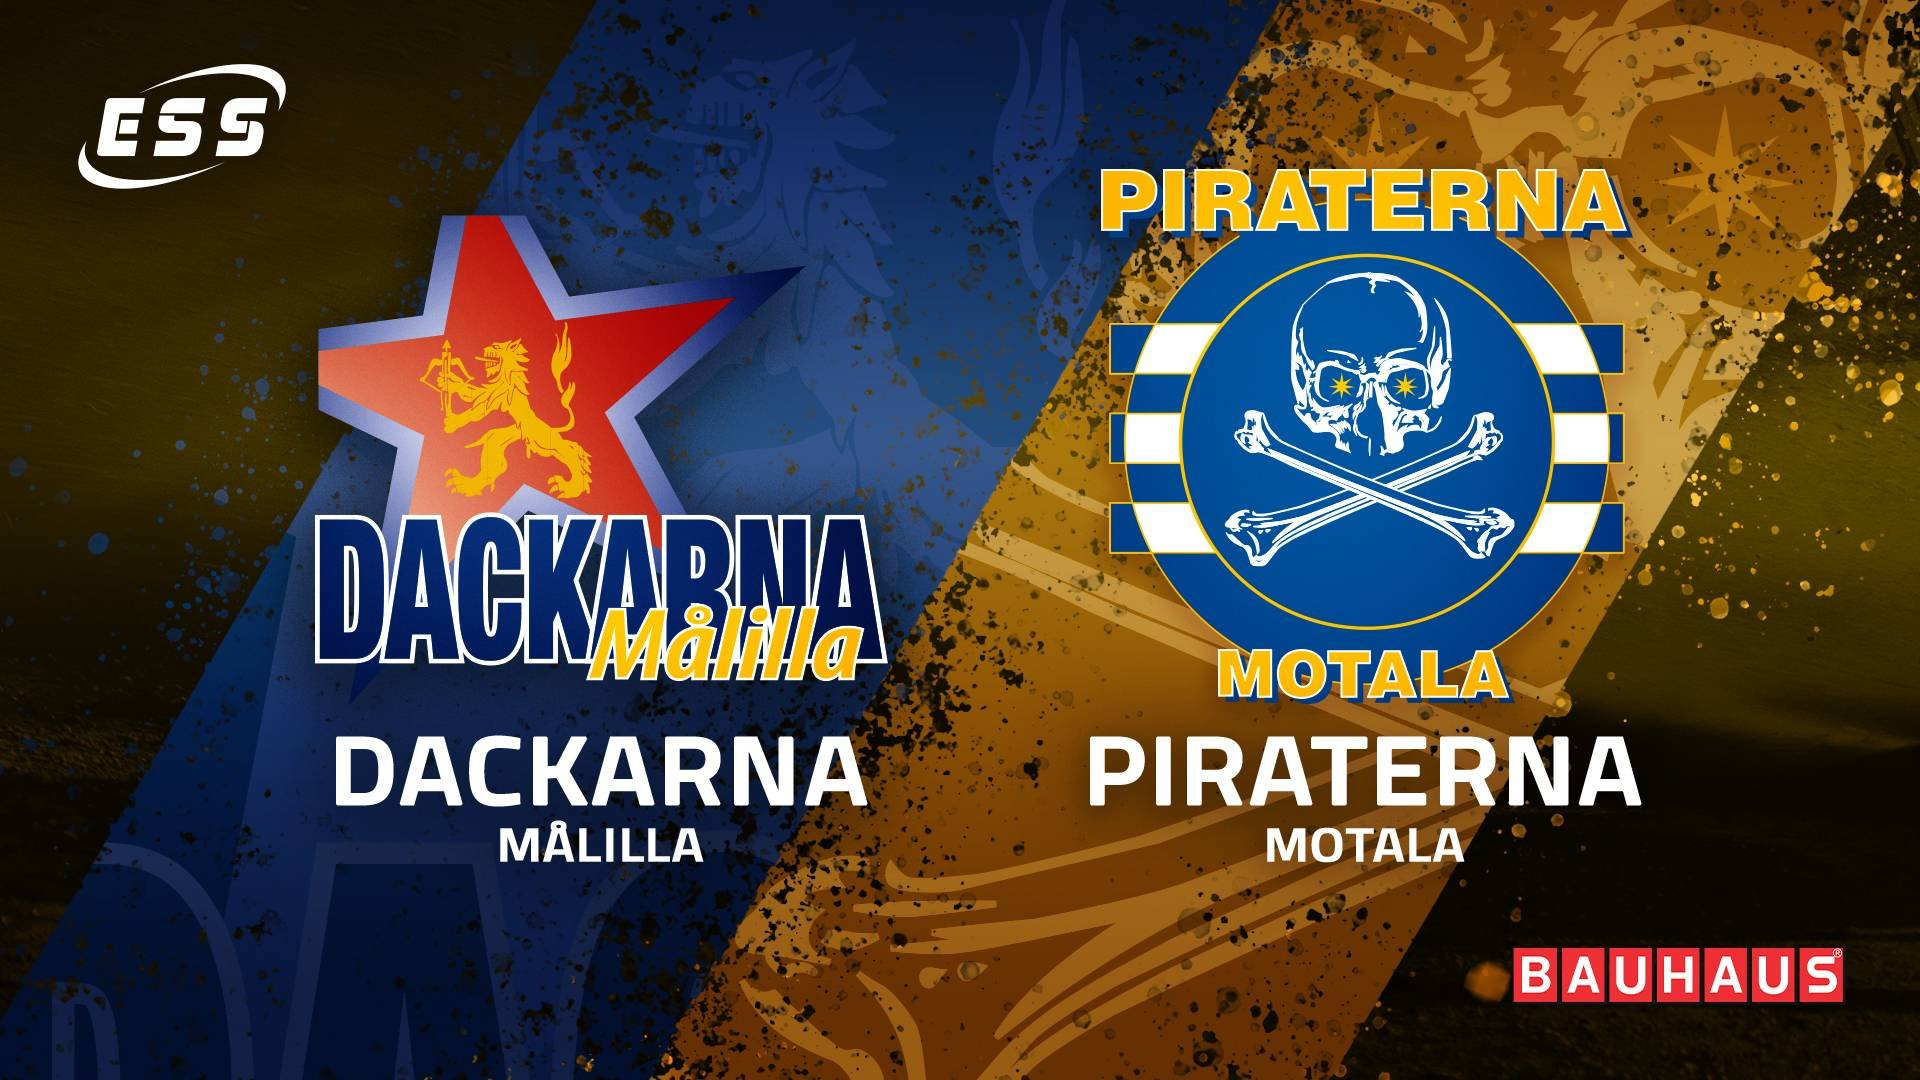 Dackarna - Piraterna